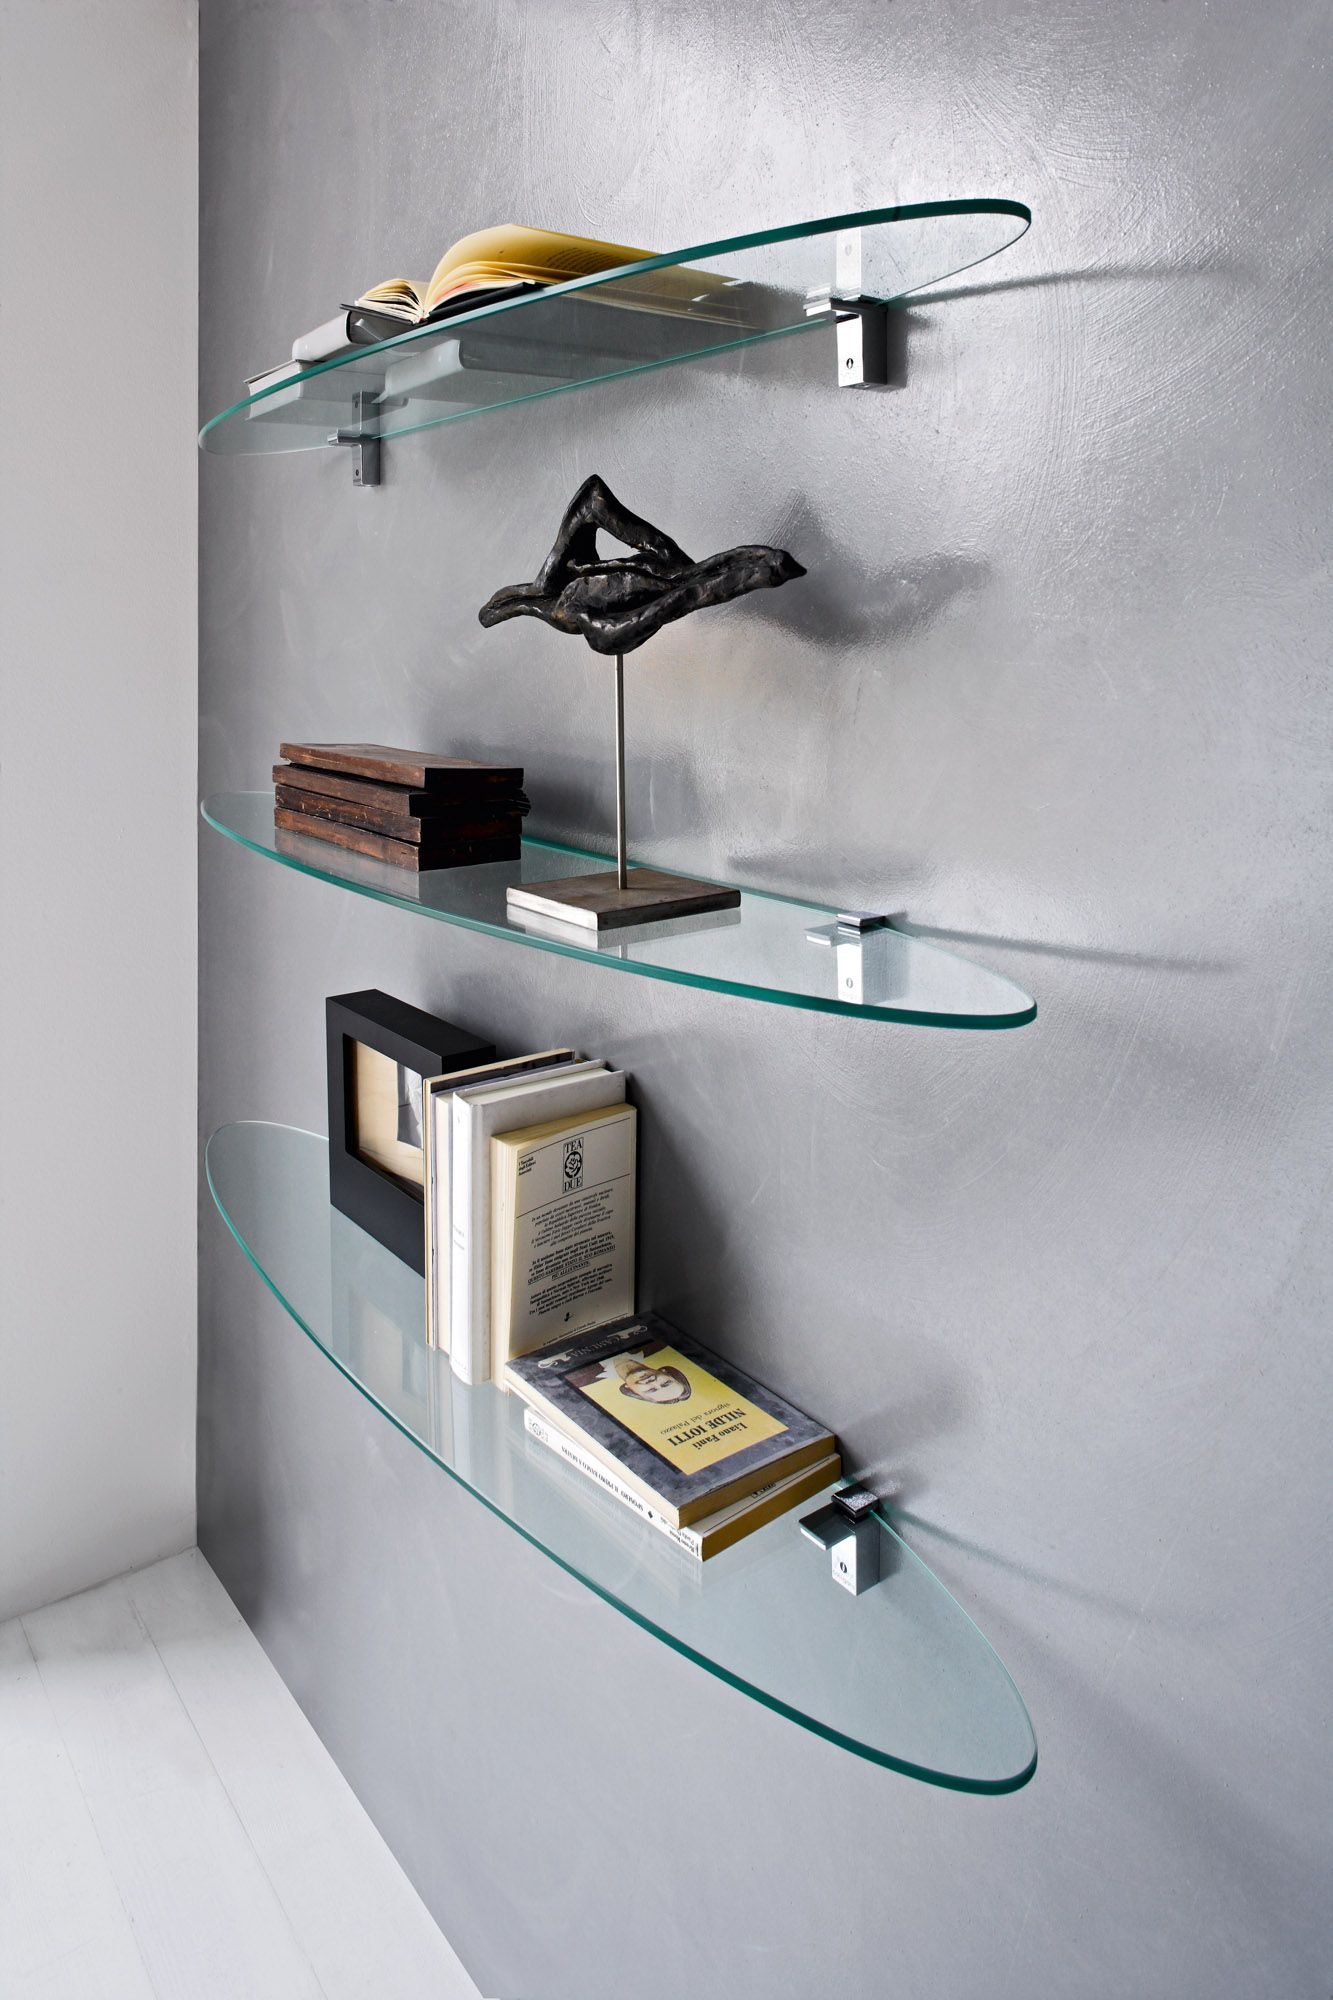 Plana Is An 8mm Thick Oval Glass Shelf Suitable For Living Area Walls The Flat Side Is Mounted O Glass Shelves Decor Glass Wall Shelves Floating Glass Shelves